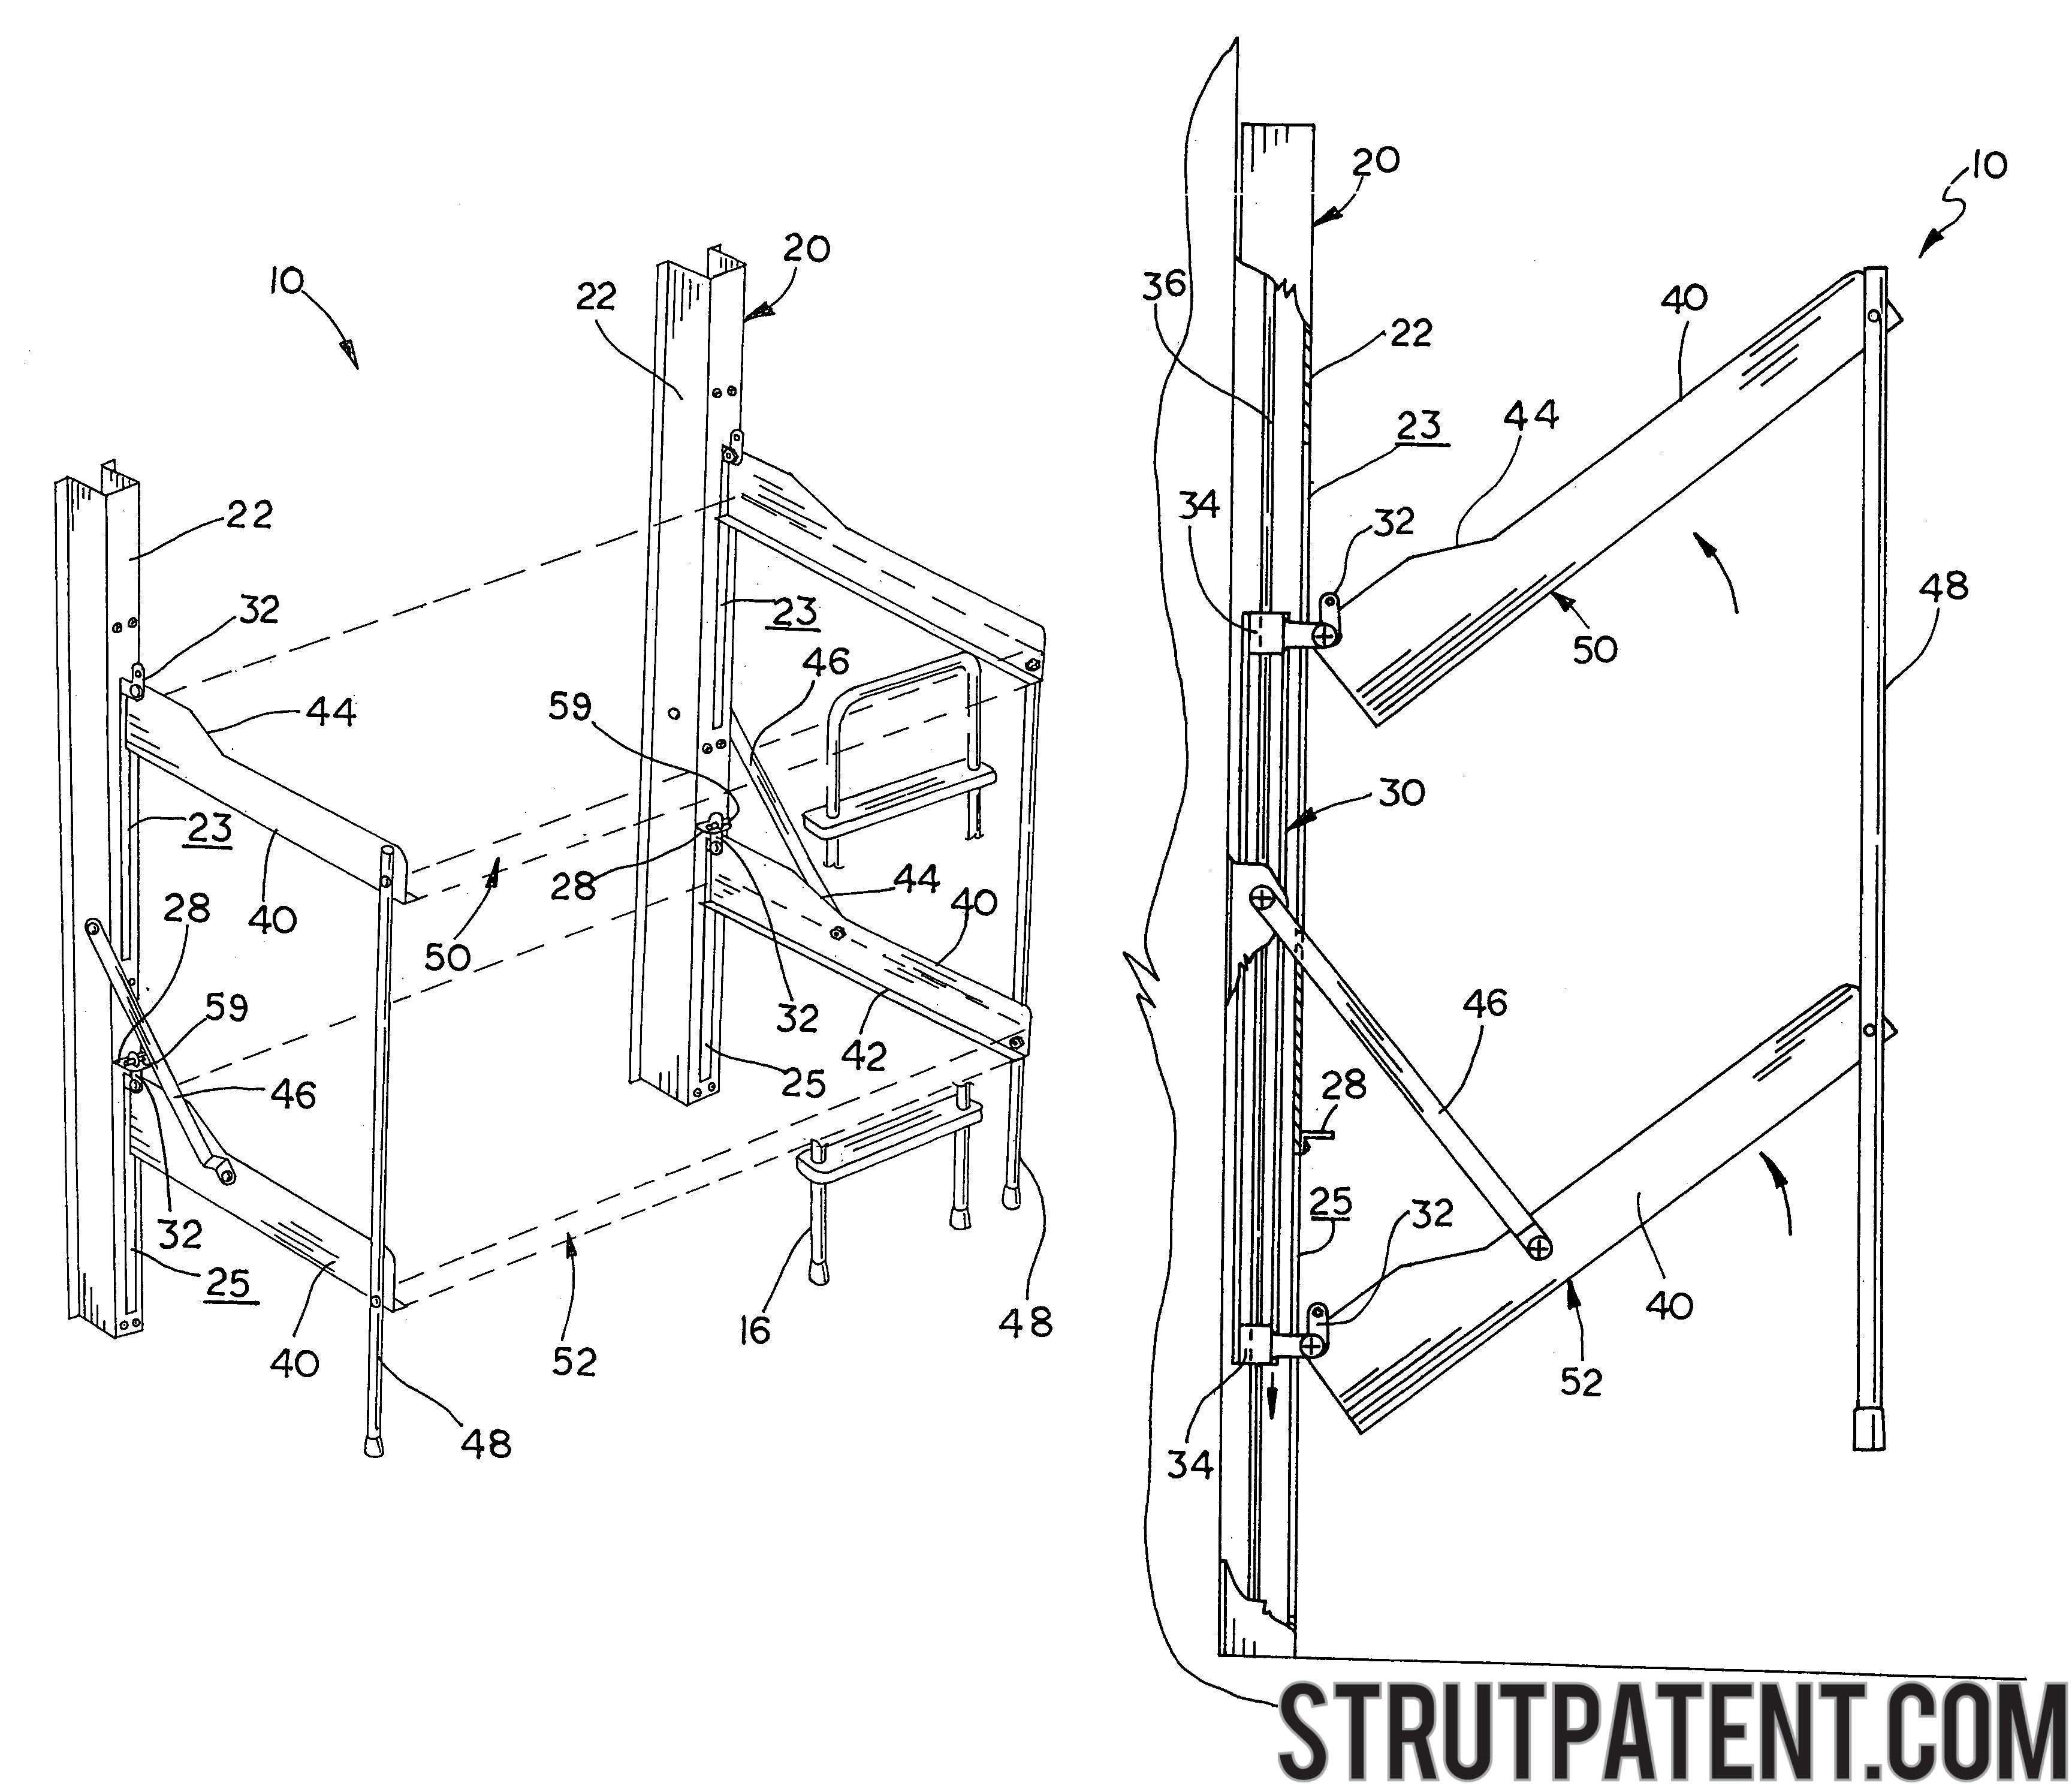 Folding Bunk Bed Plans Maximize Space By Placing A Custom